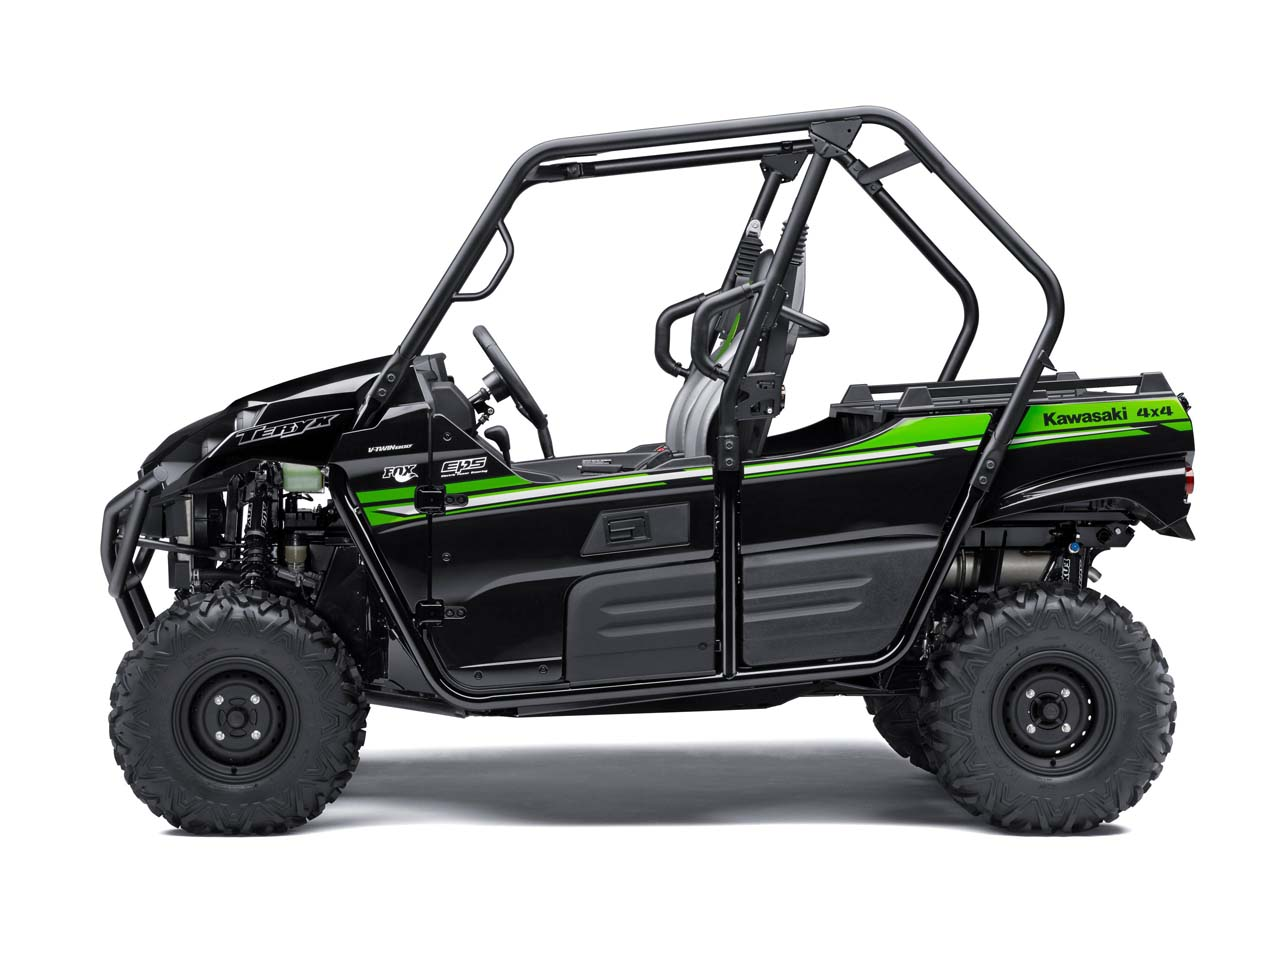 hight resolution of  a 783cc v twin engine combined with fox podium 2 0 suspension and rugged enough to help out with chores with plenty of torque and 1 300 pounds of towing